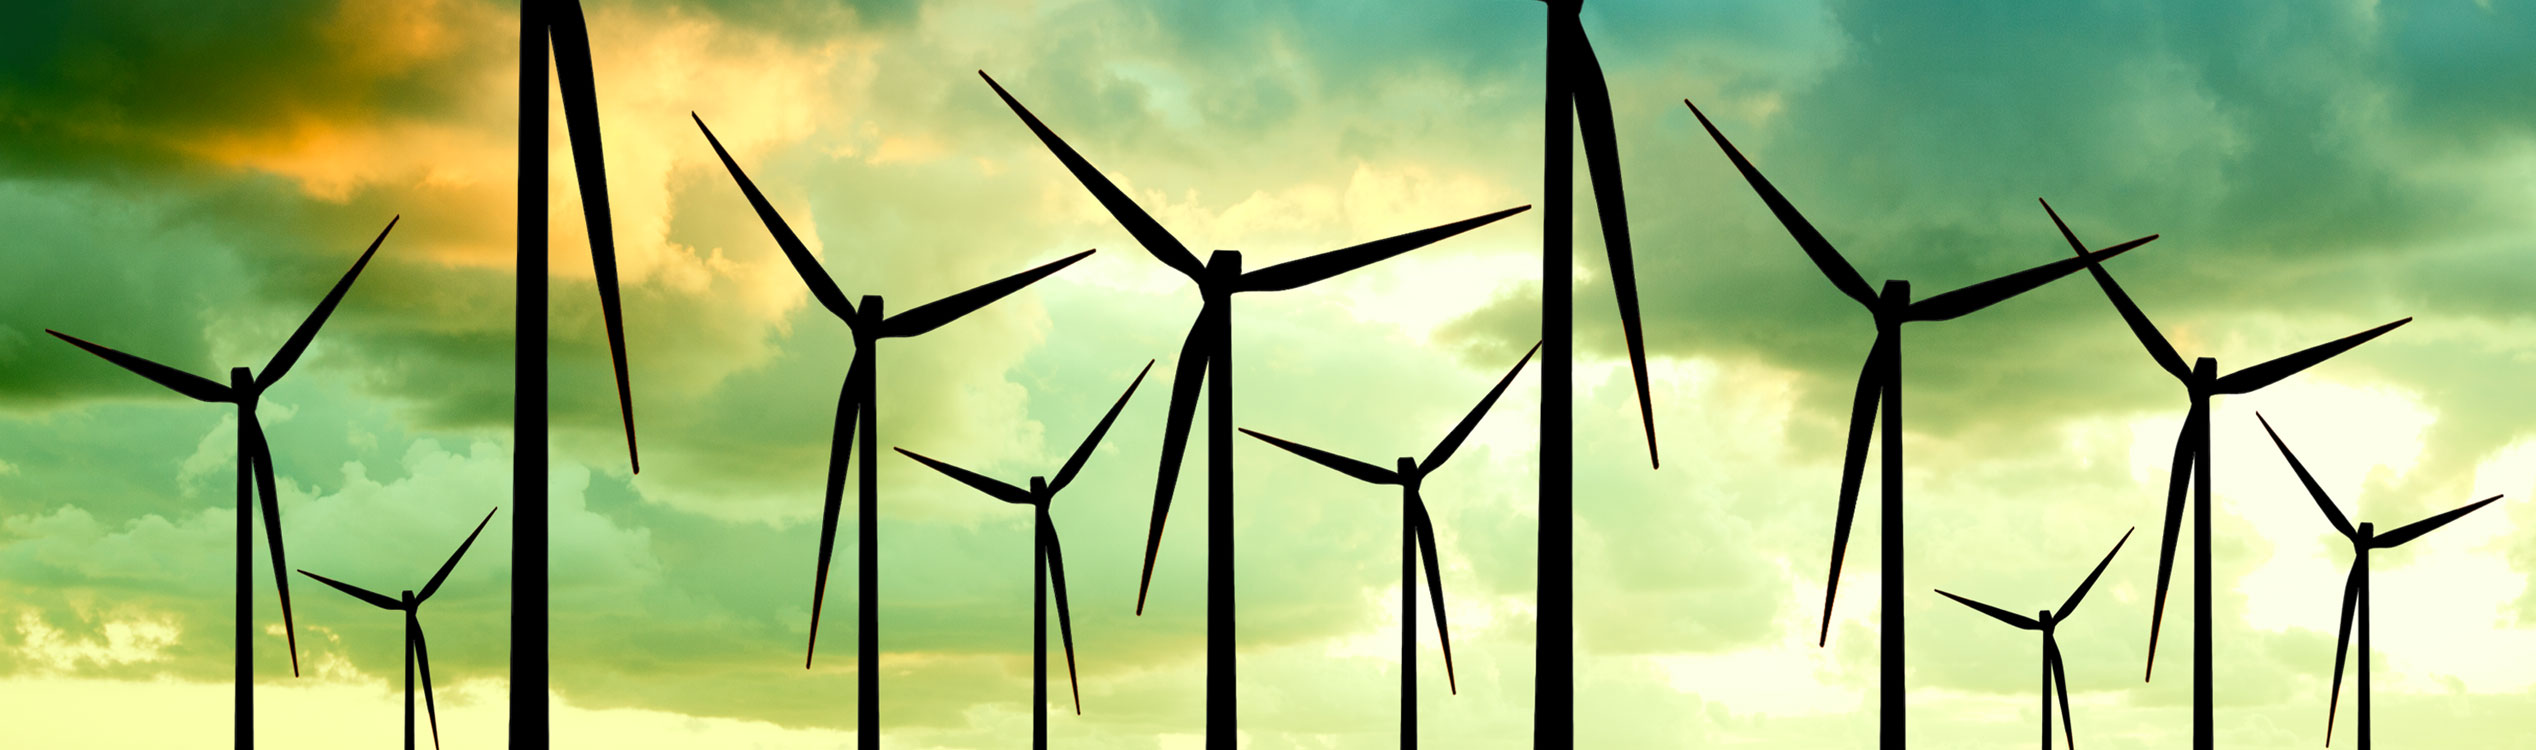 Innovating renewable energy using a sector-wide approach